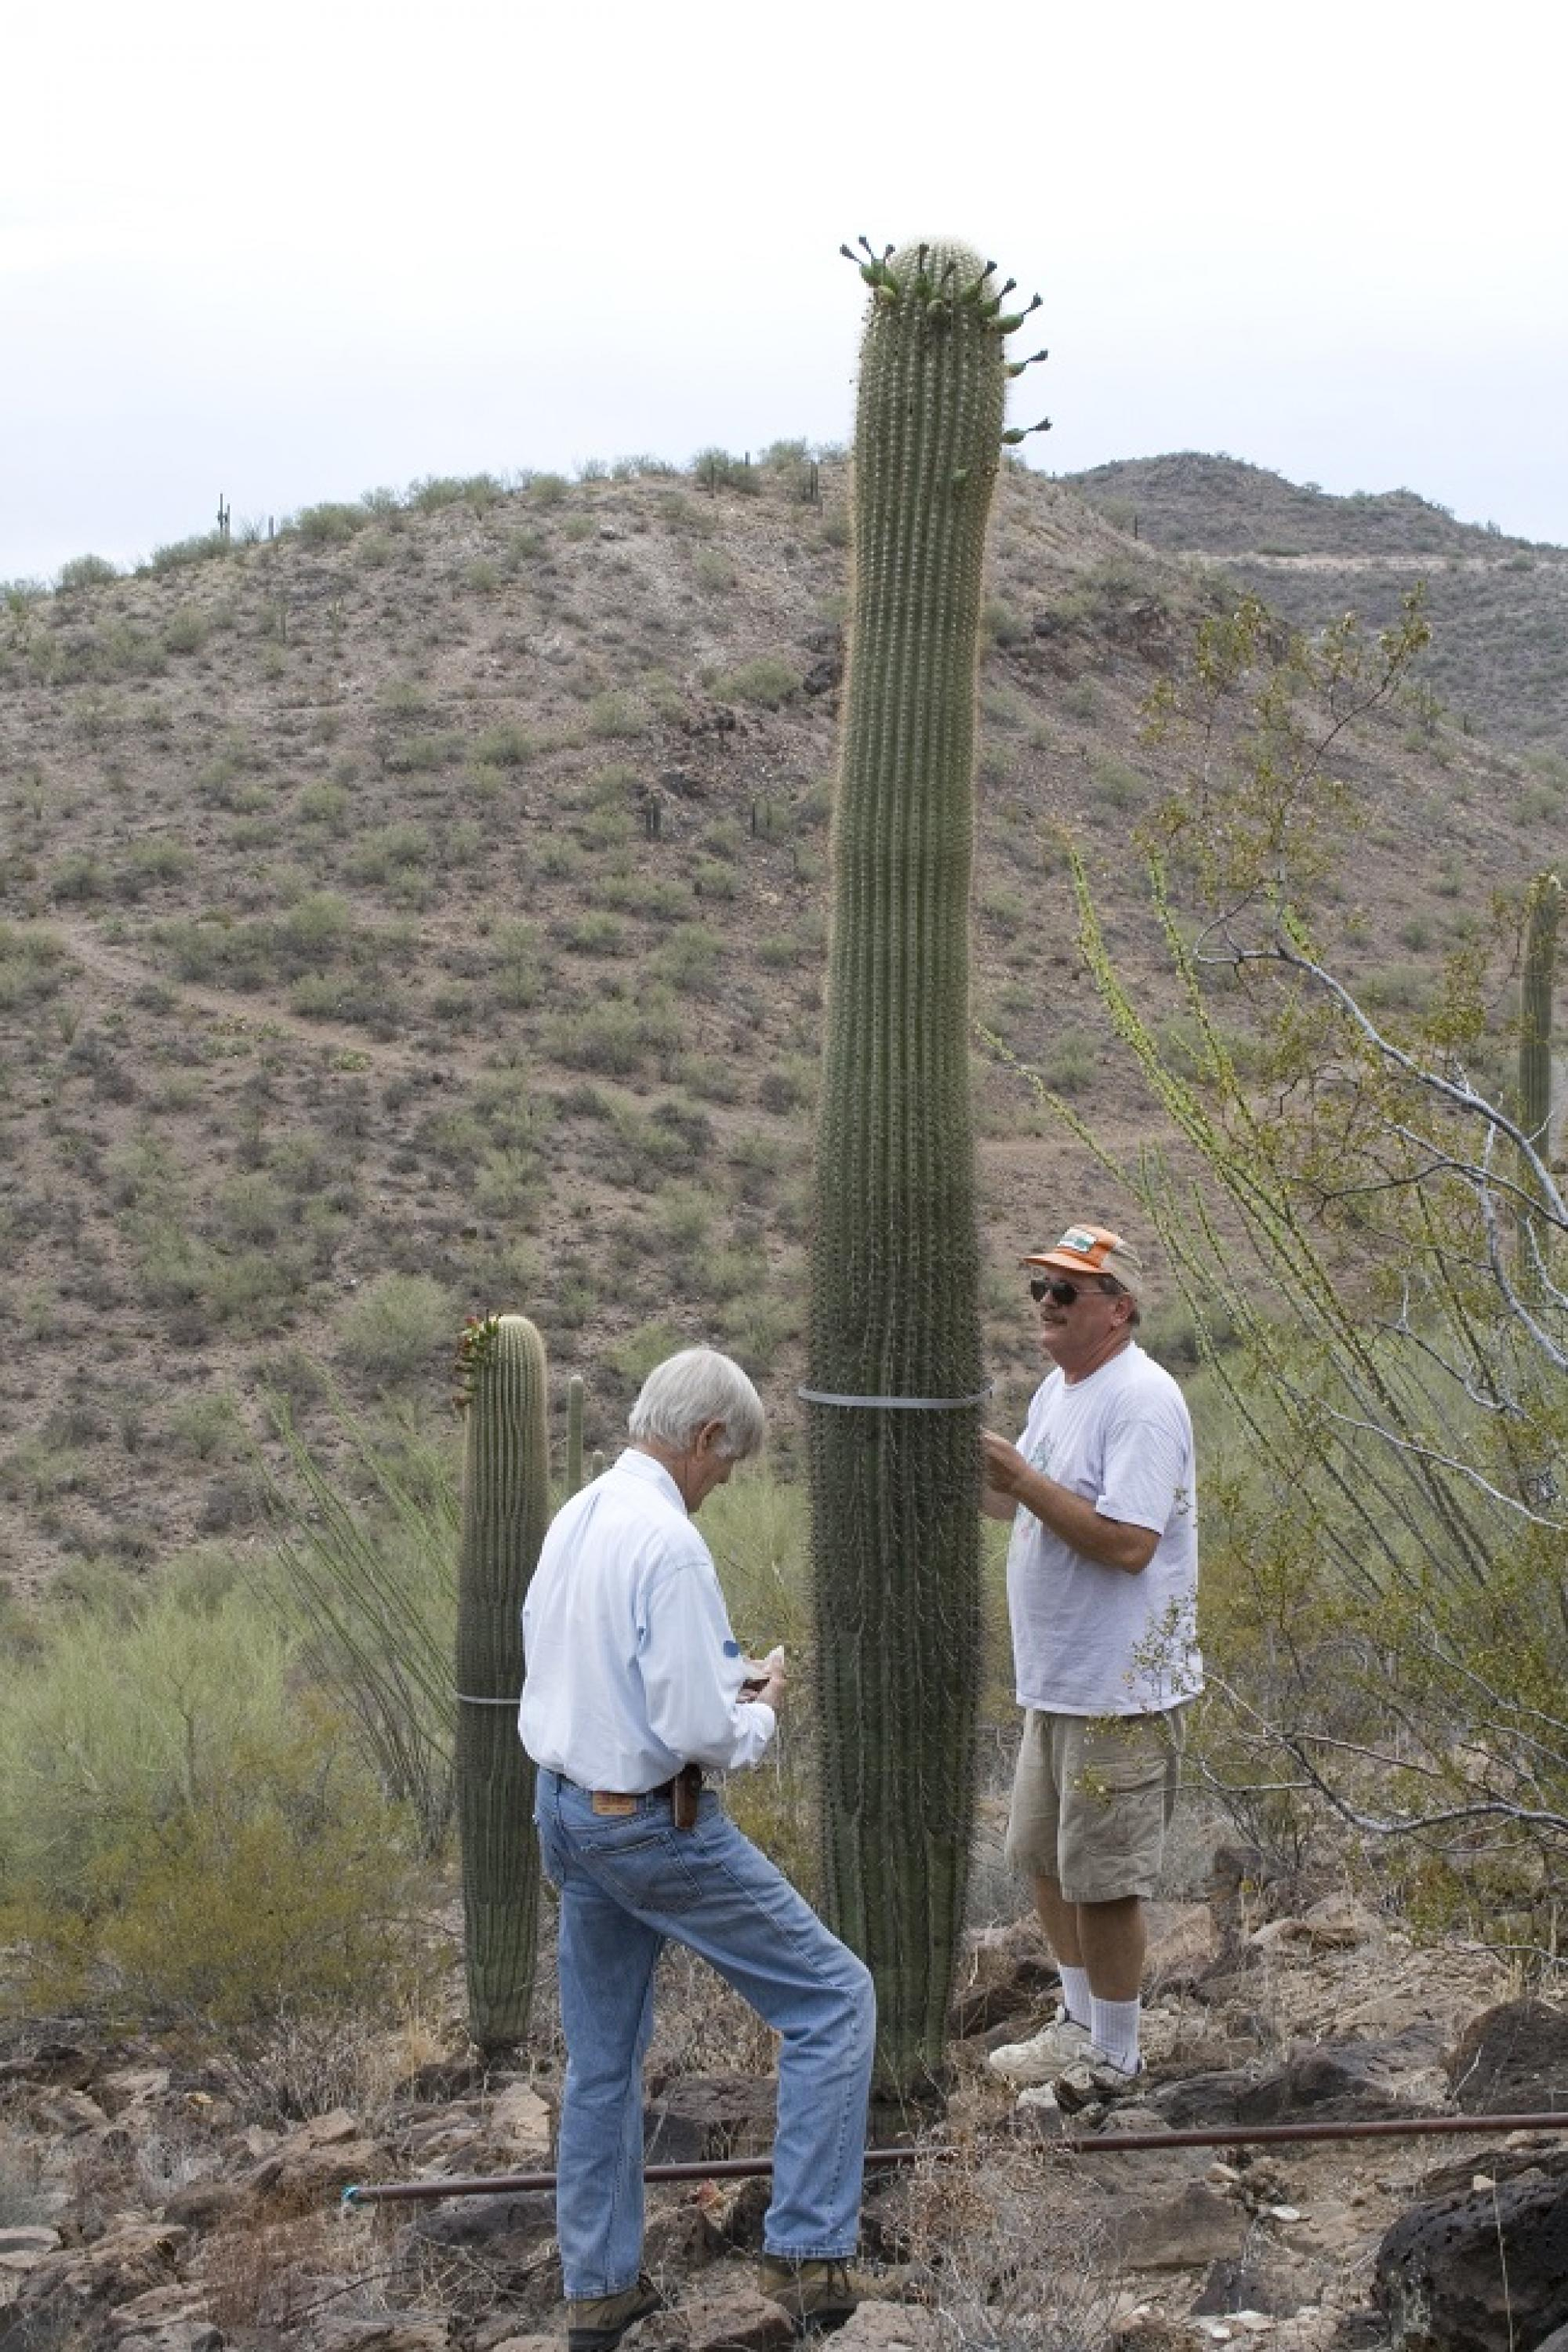 Ray Turner, one of the researchers that established the plots in the 1960s, and Robert Webb, a lead researcher and co-author of the paper taking measurements of a saguaro. Susana Rodríguez-Buriticá is grateful of the commitment by the previous generations